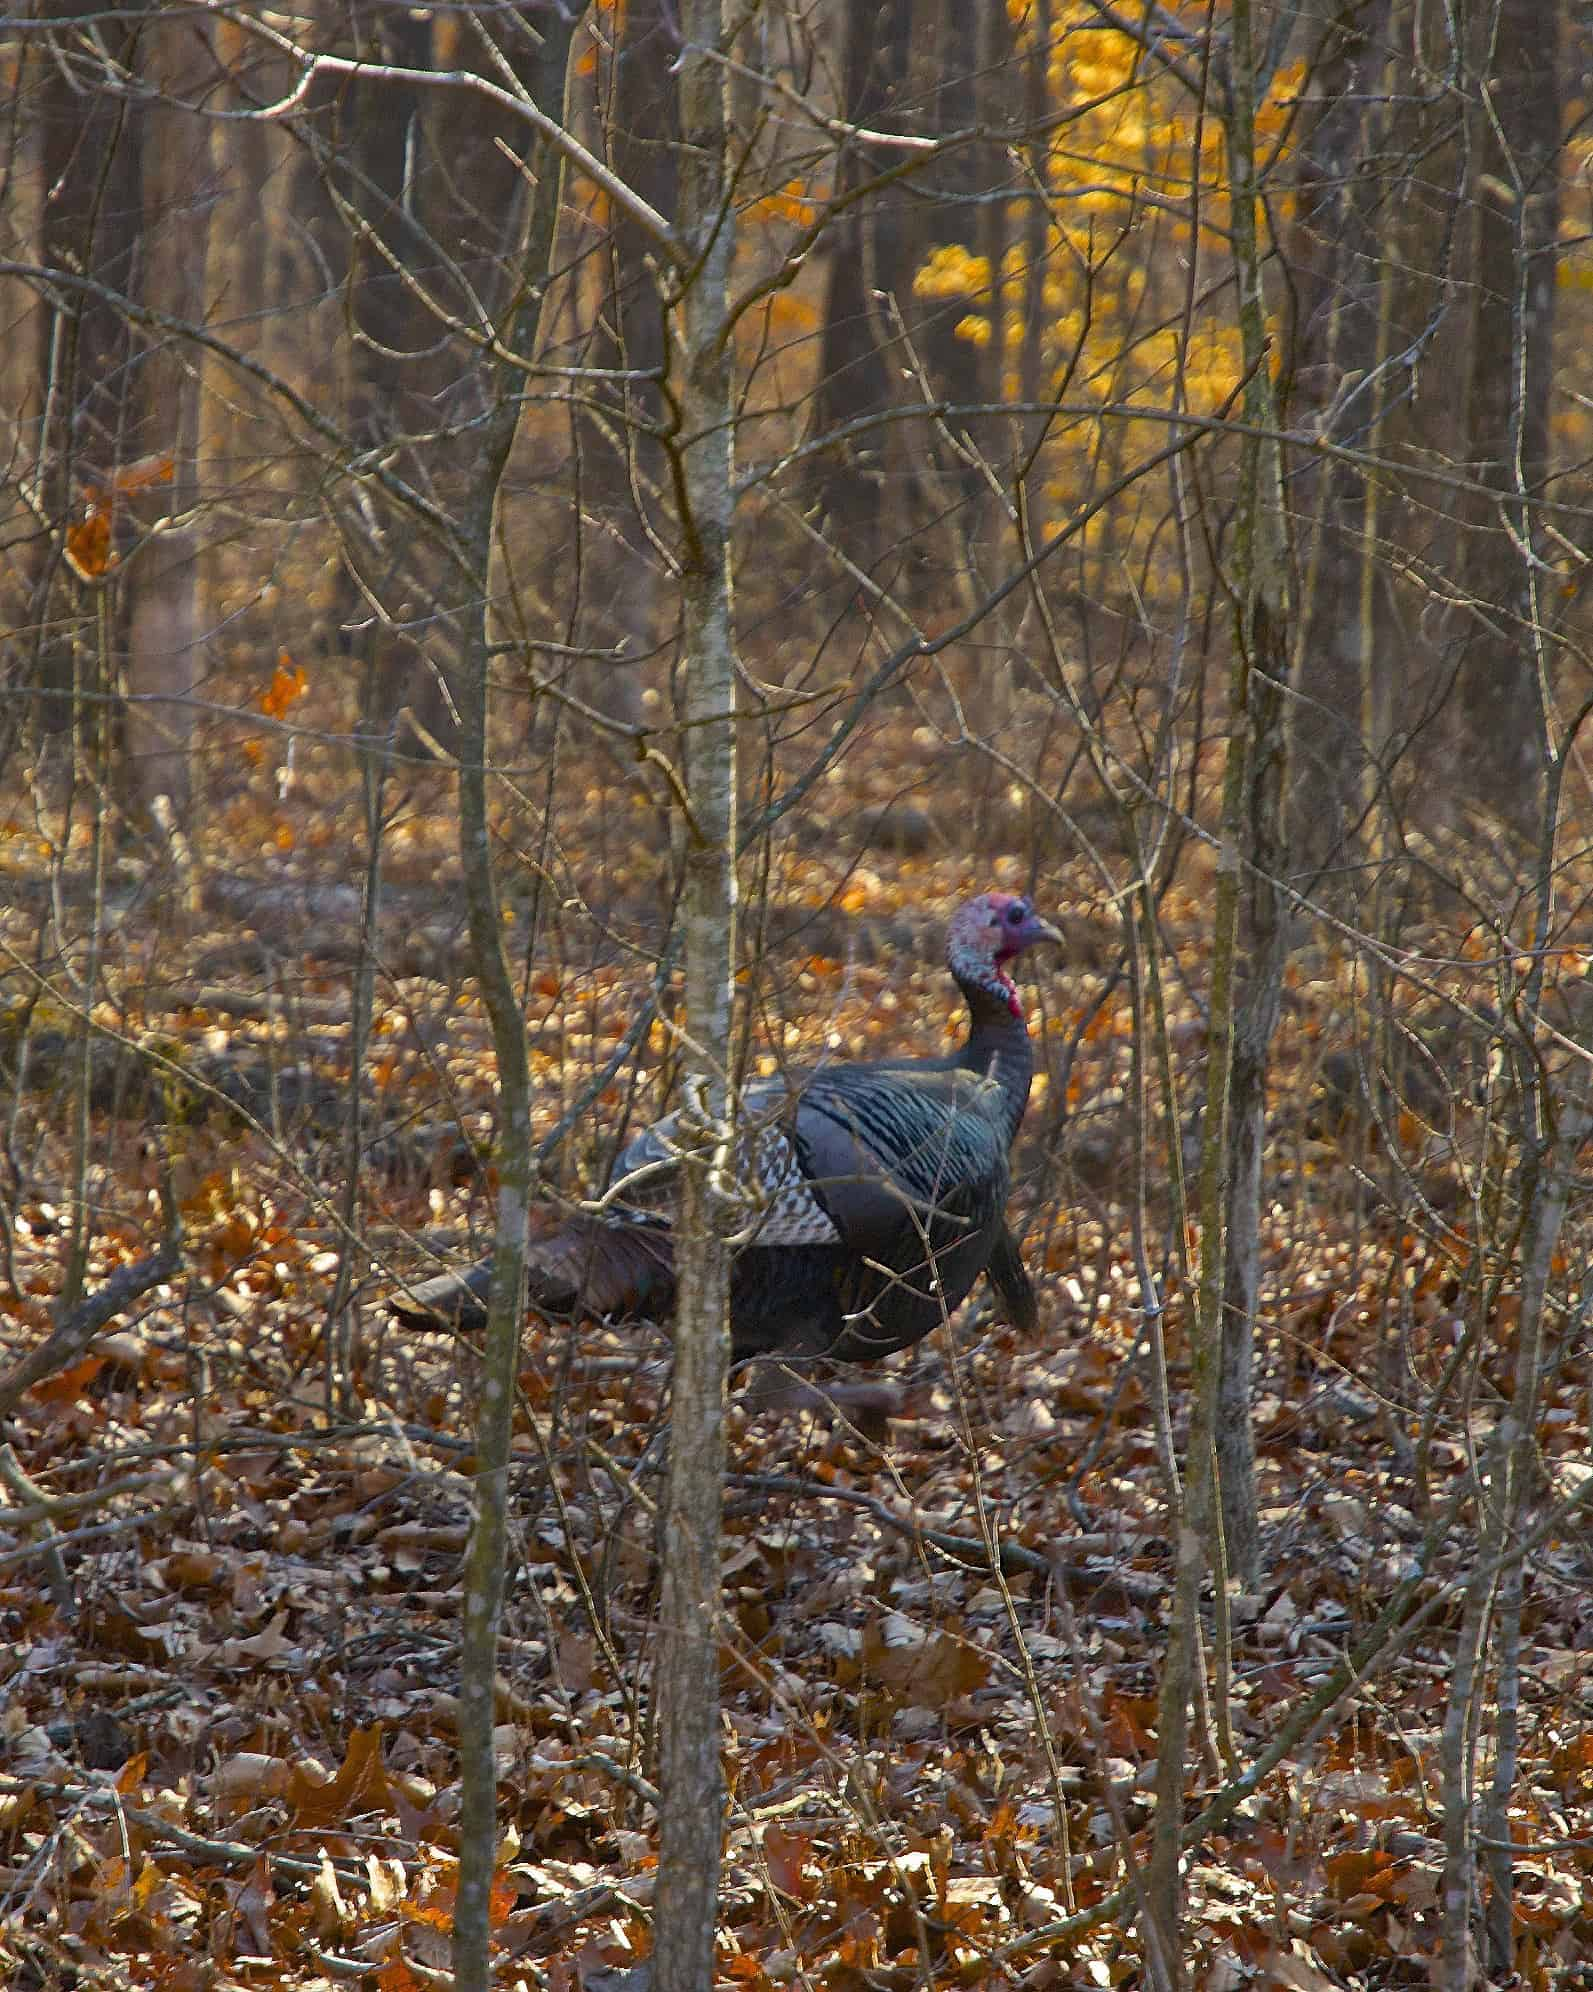 Wild turkey foraging in one of Oregon's many mixed hardwood stands. Credit: wplynn via Flickr Creative Commons